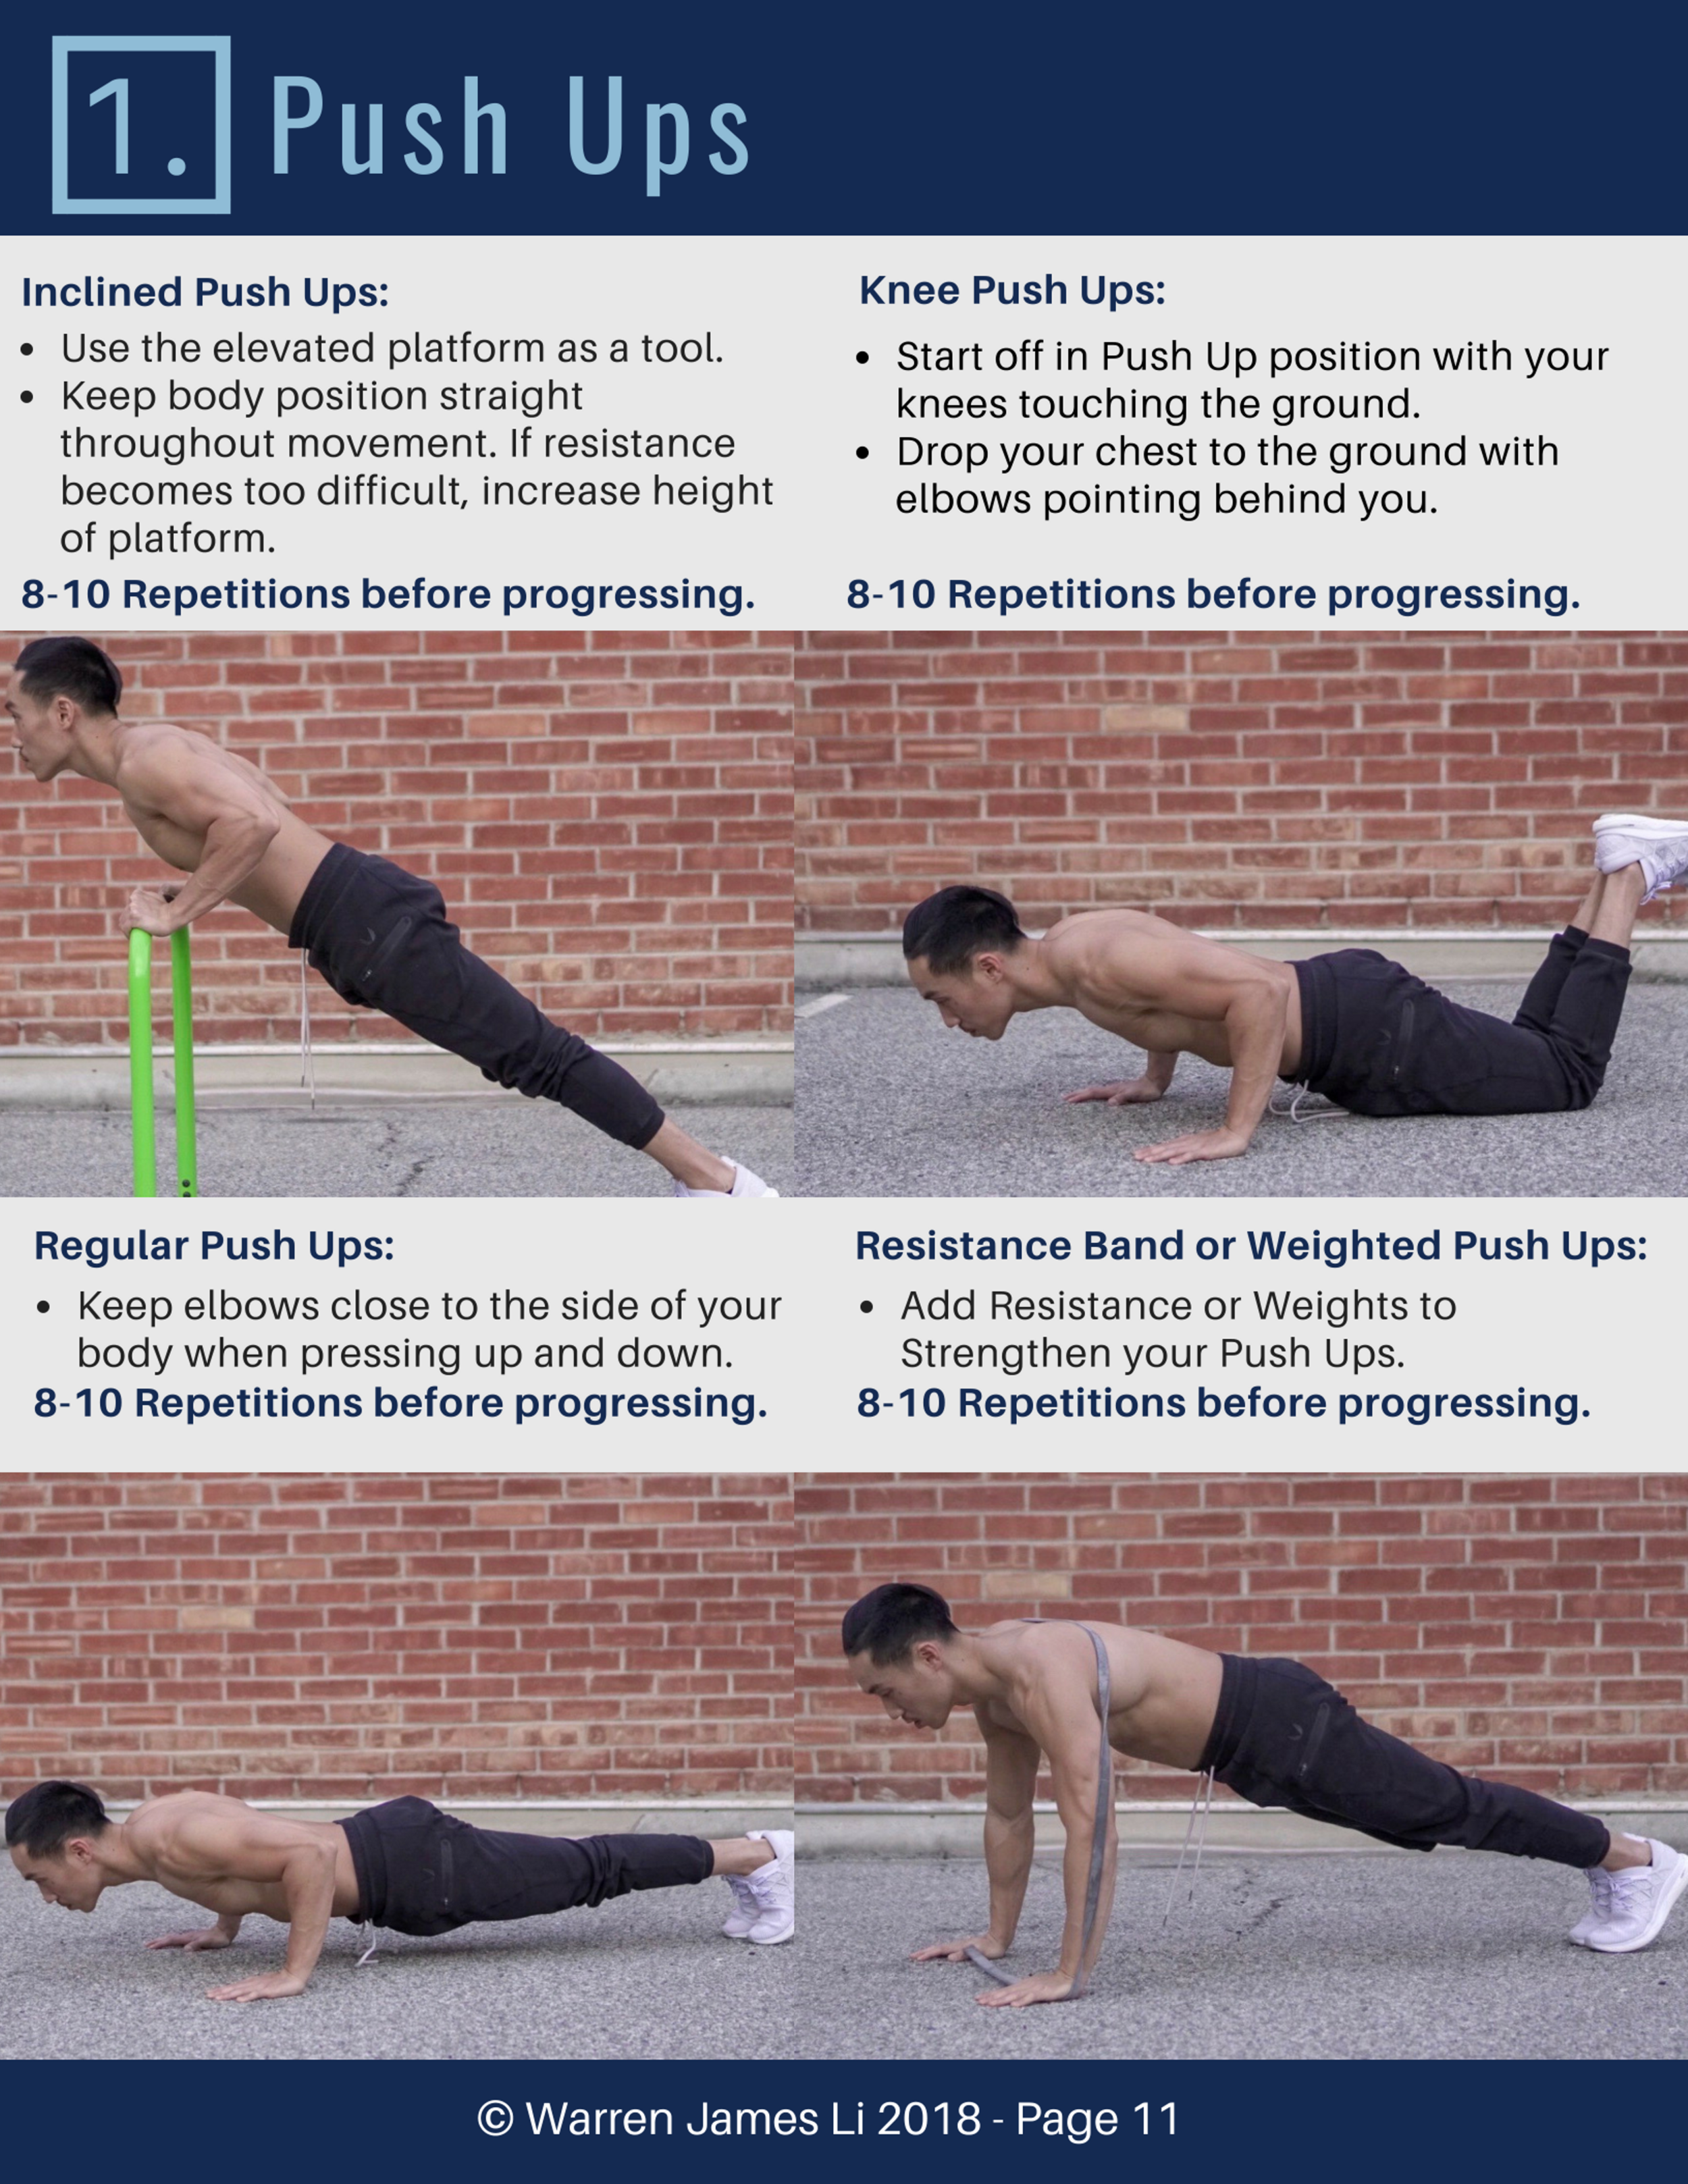 2. Push Ups- 9 ExercisesTo Get Strong With Calisthenics (1).png